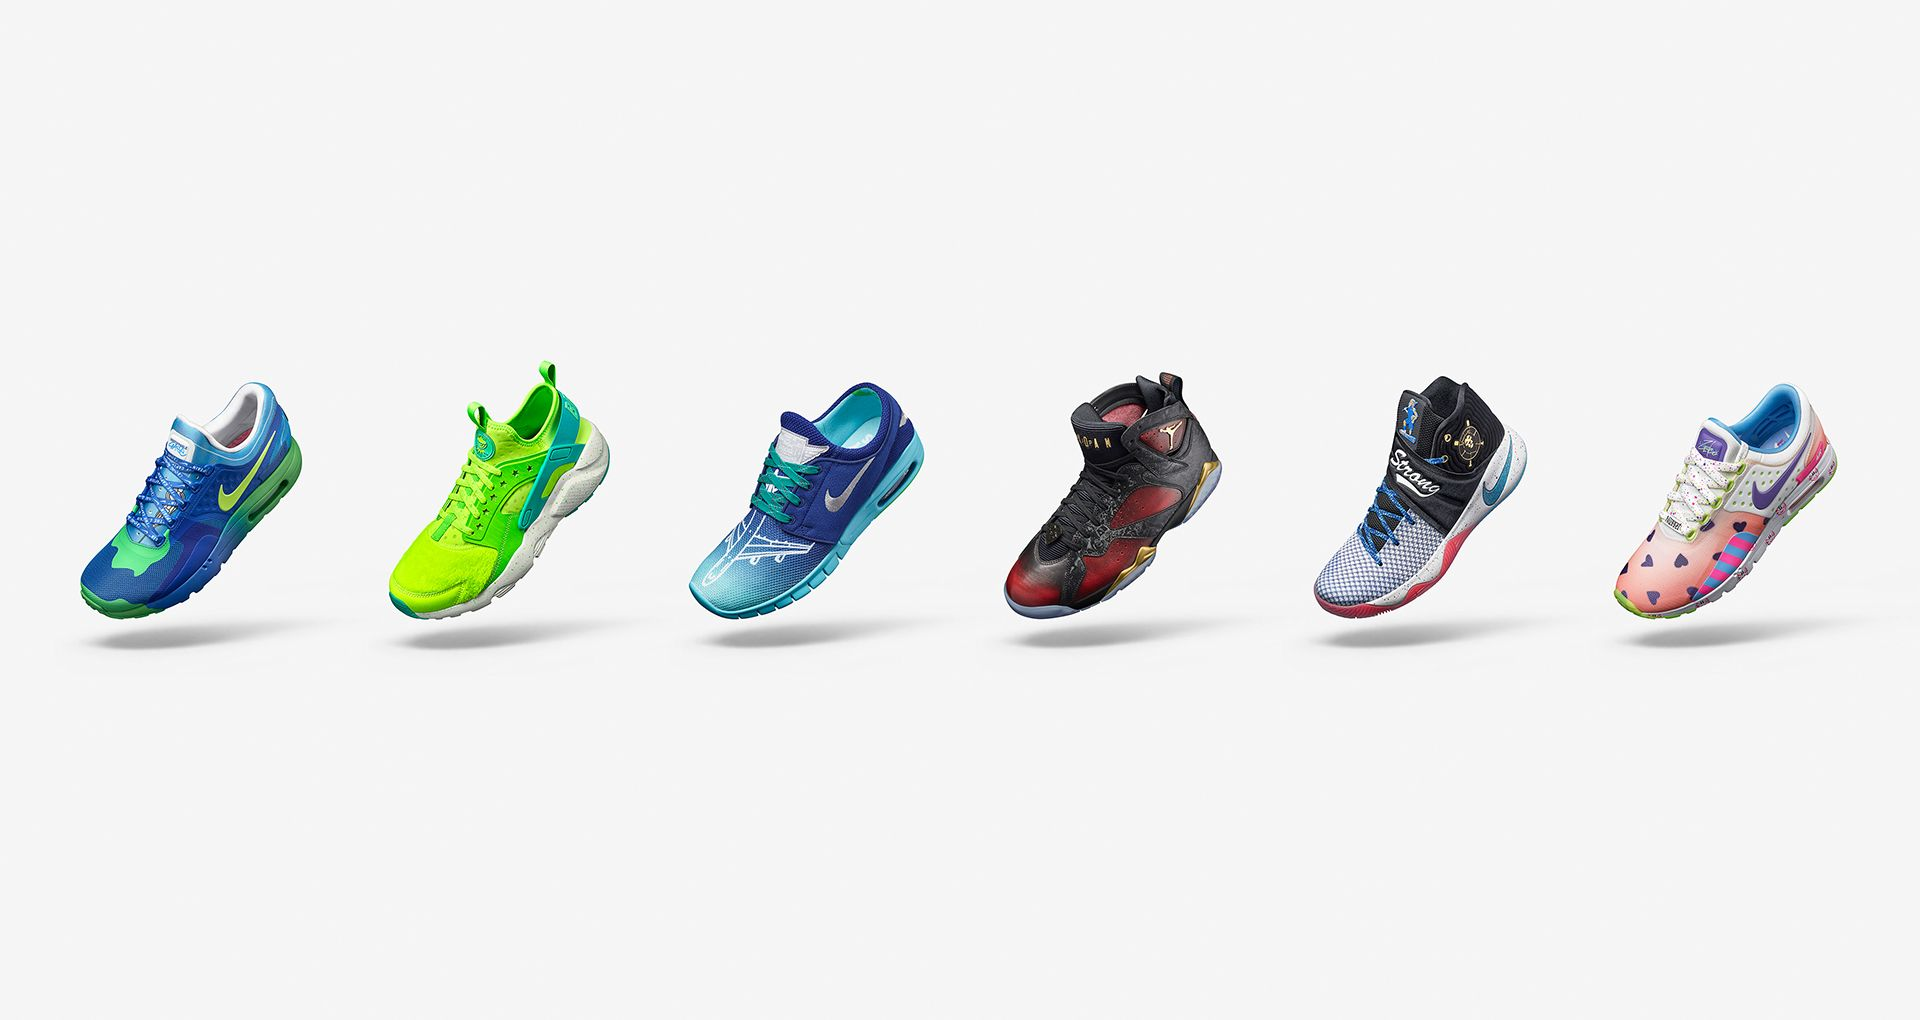 f9658164555 Nike Doernbecher 2016 Freestyle Collection. Nike+ SNKRS